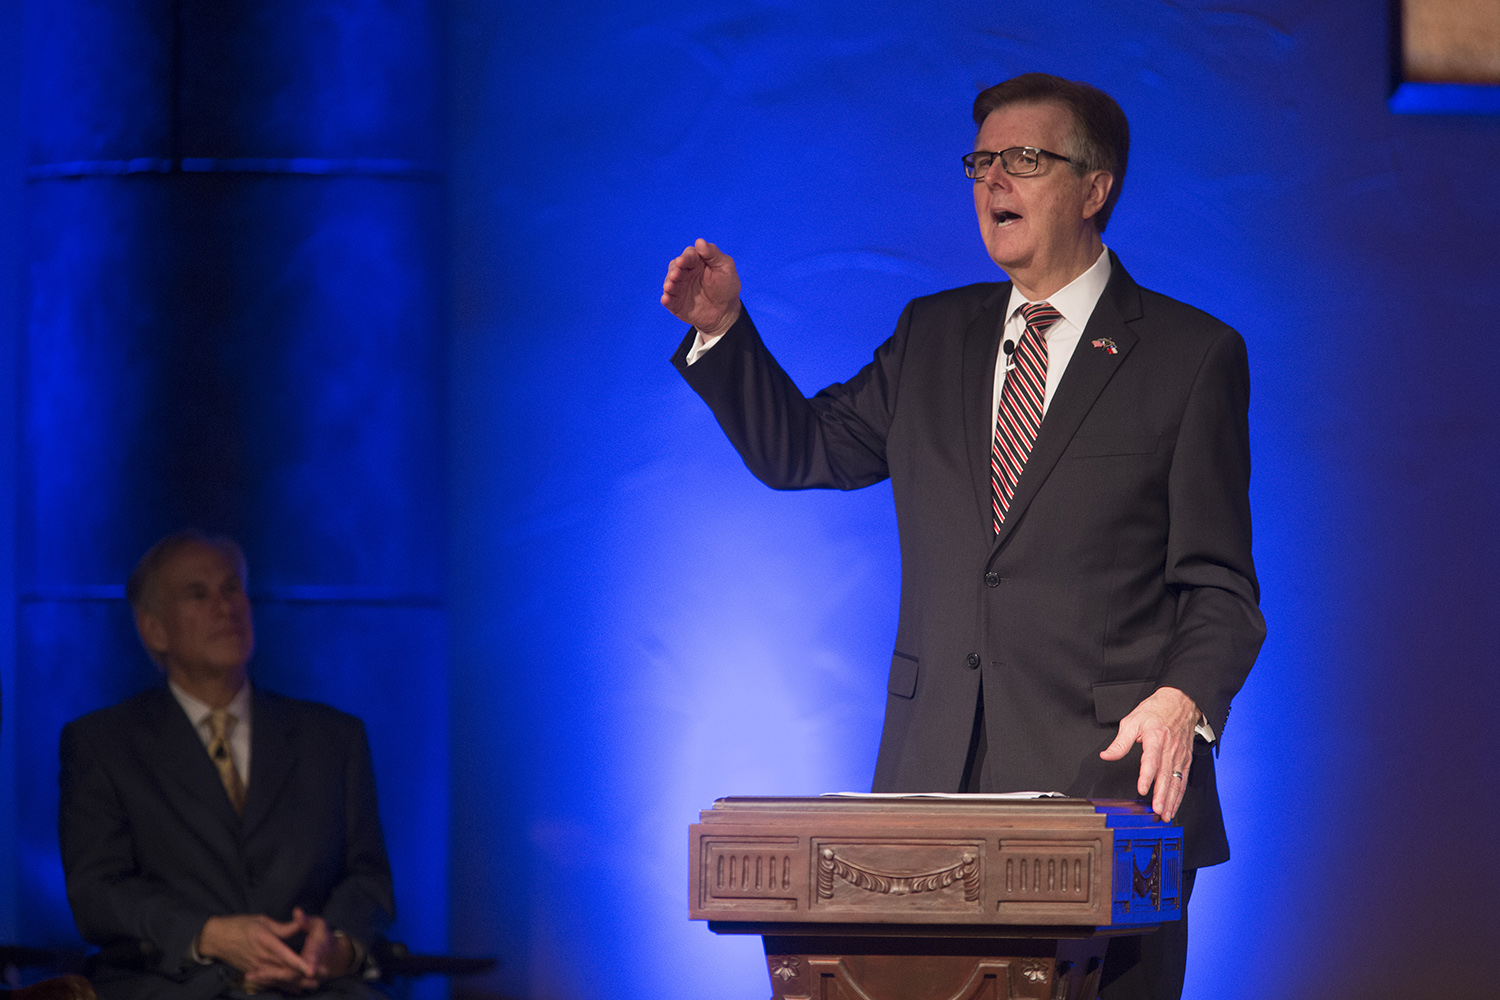 Lt. Gov. Dan Patrick speaks to the congregation before Gov. Greg Abbott signs Senate Bill 24 into law at Grace Church in The Woodlands on May 21, 2017. The legislation shields pastors' sermons from government subpoena power.